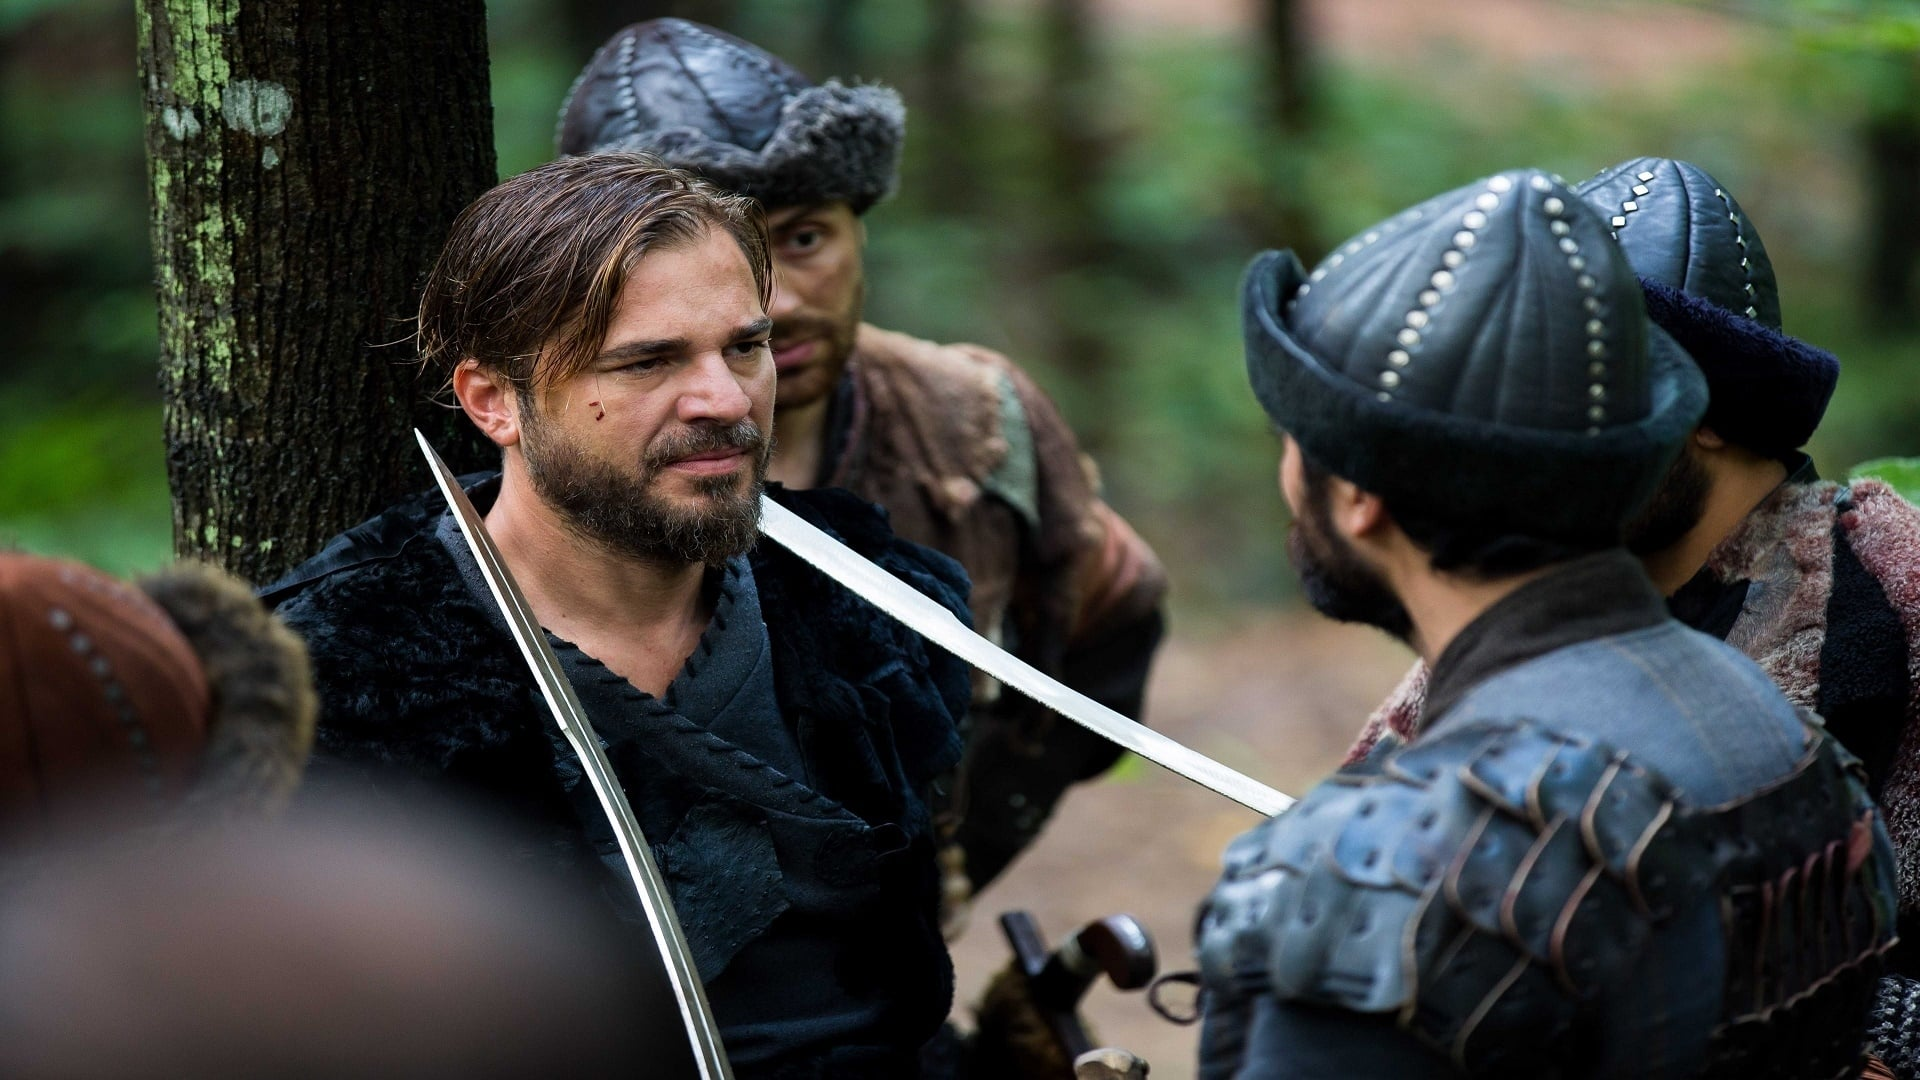 Dirilis Ertugrul season 2 Episode 7